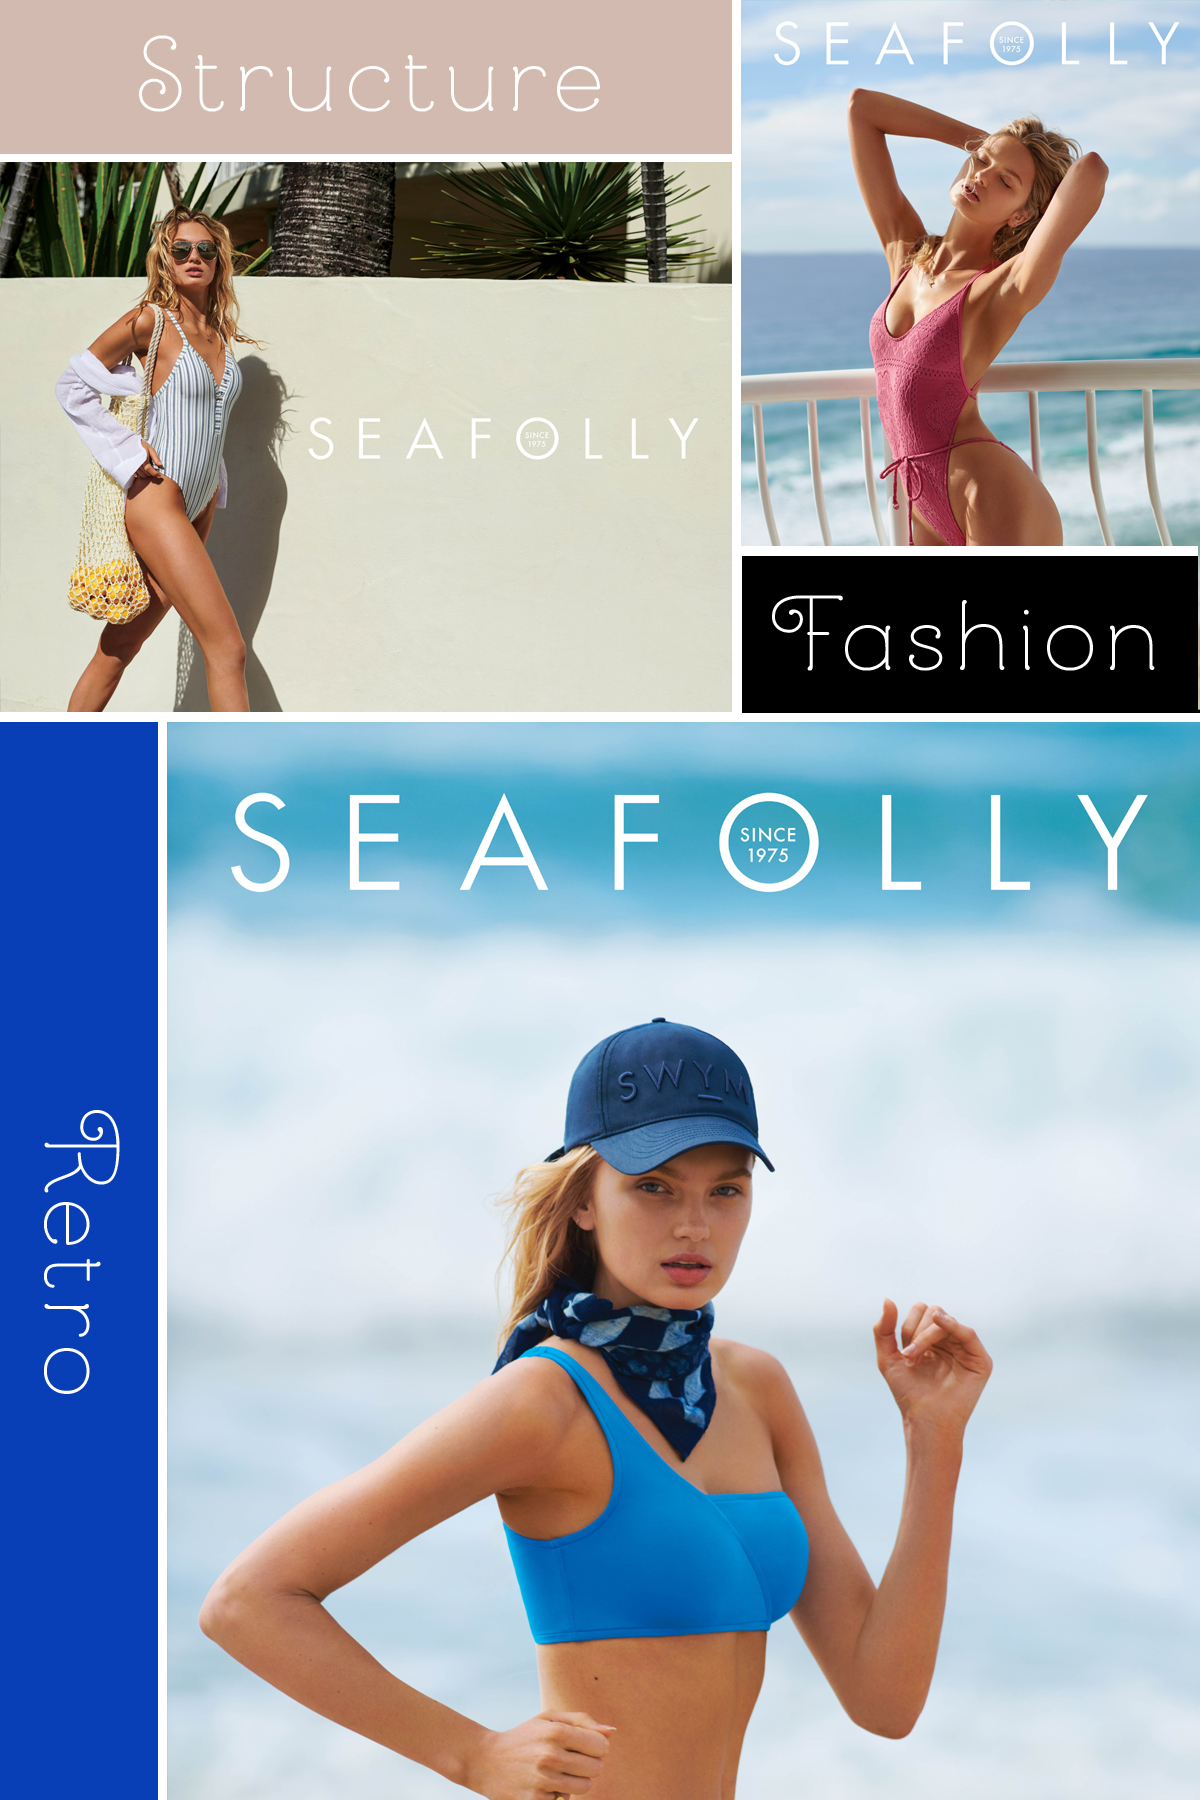 designer_seafolly-1.jpg?fit=1200%2C1800&ssl=1